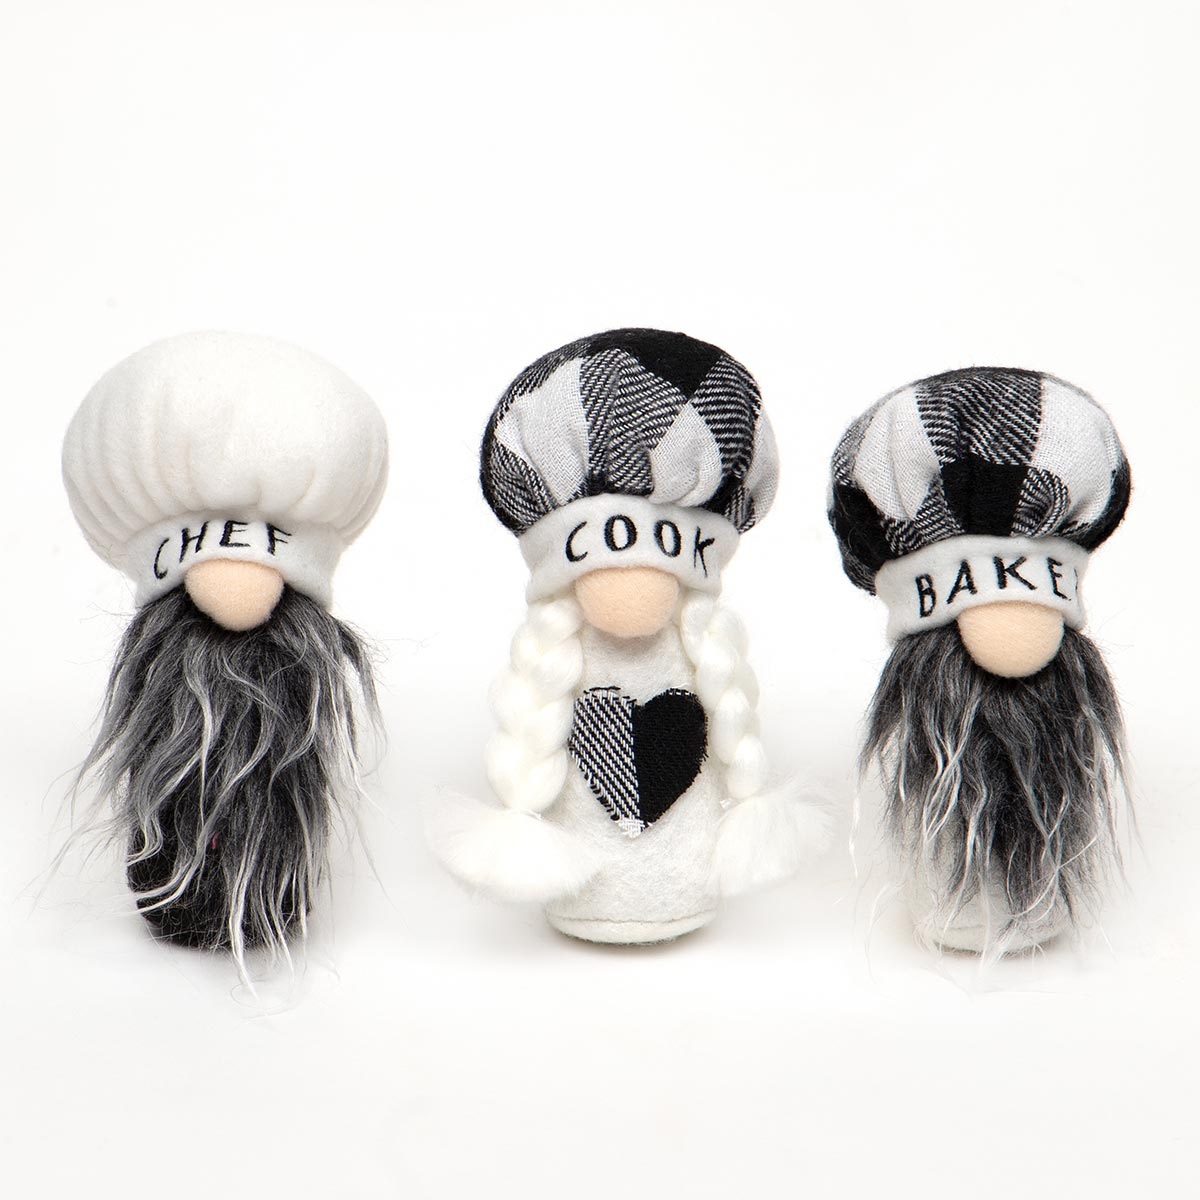 BON APPETIT TRIO GNOME WITH CHEF HAT